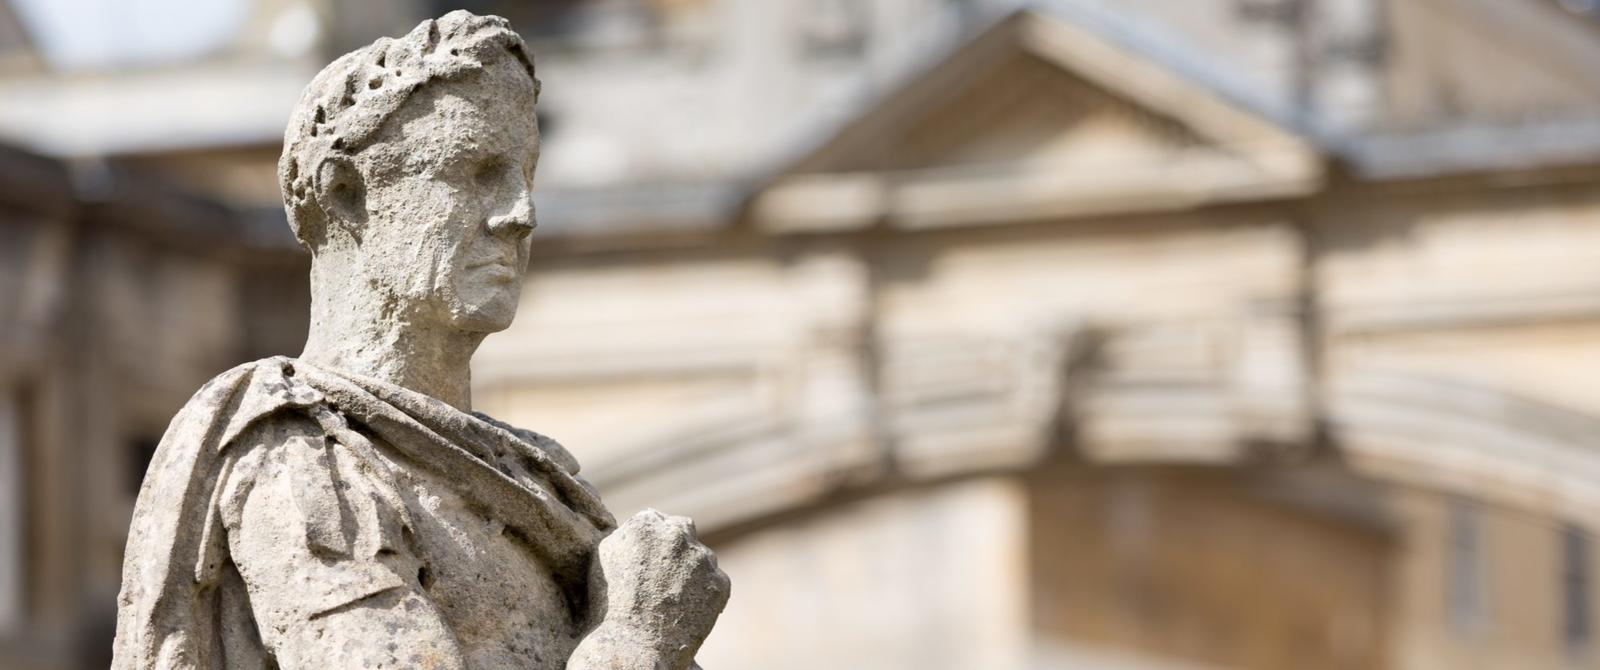 Image: Statue on the Roman Baths Terrace